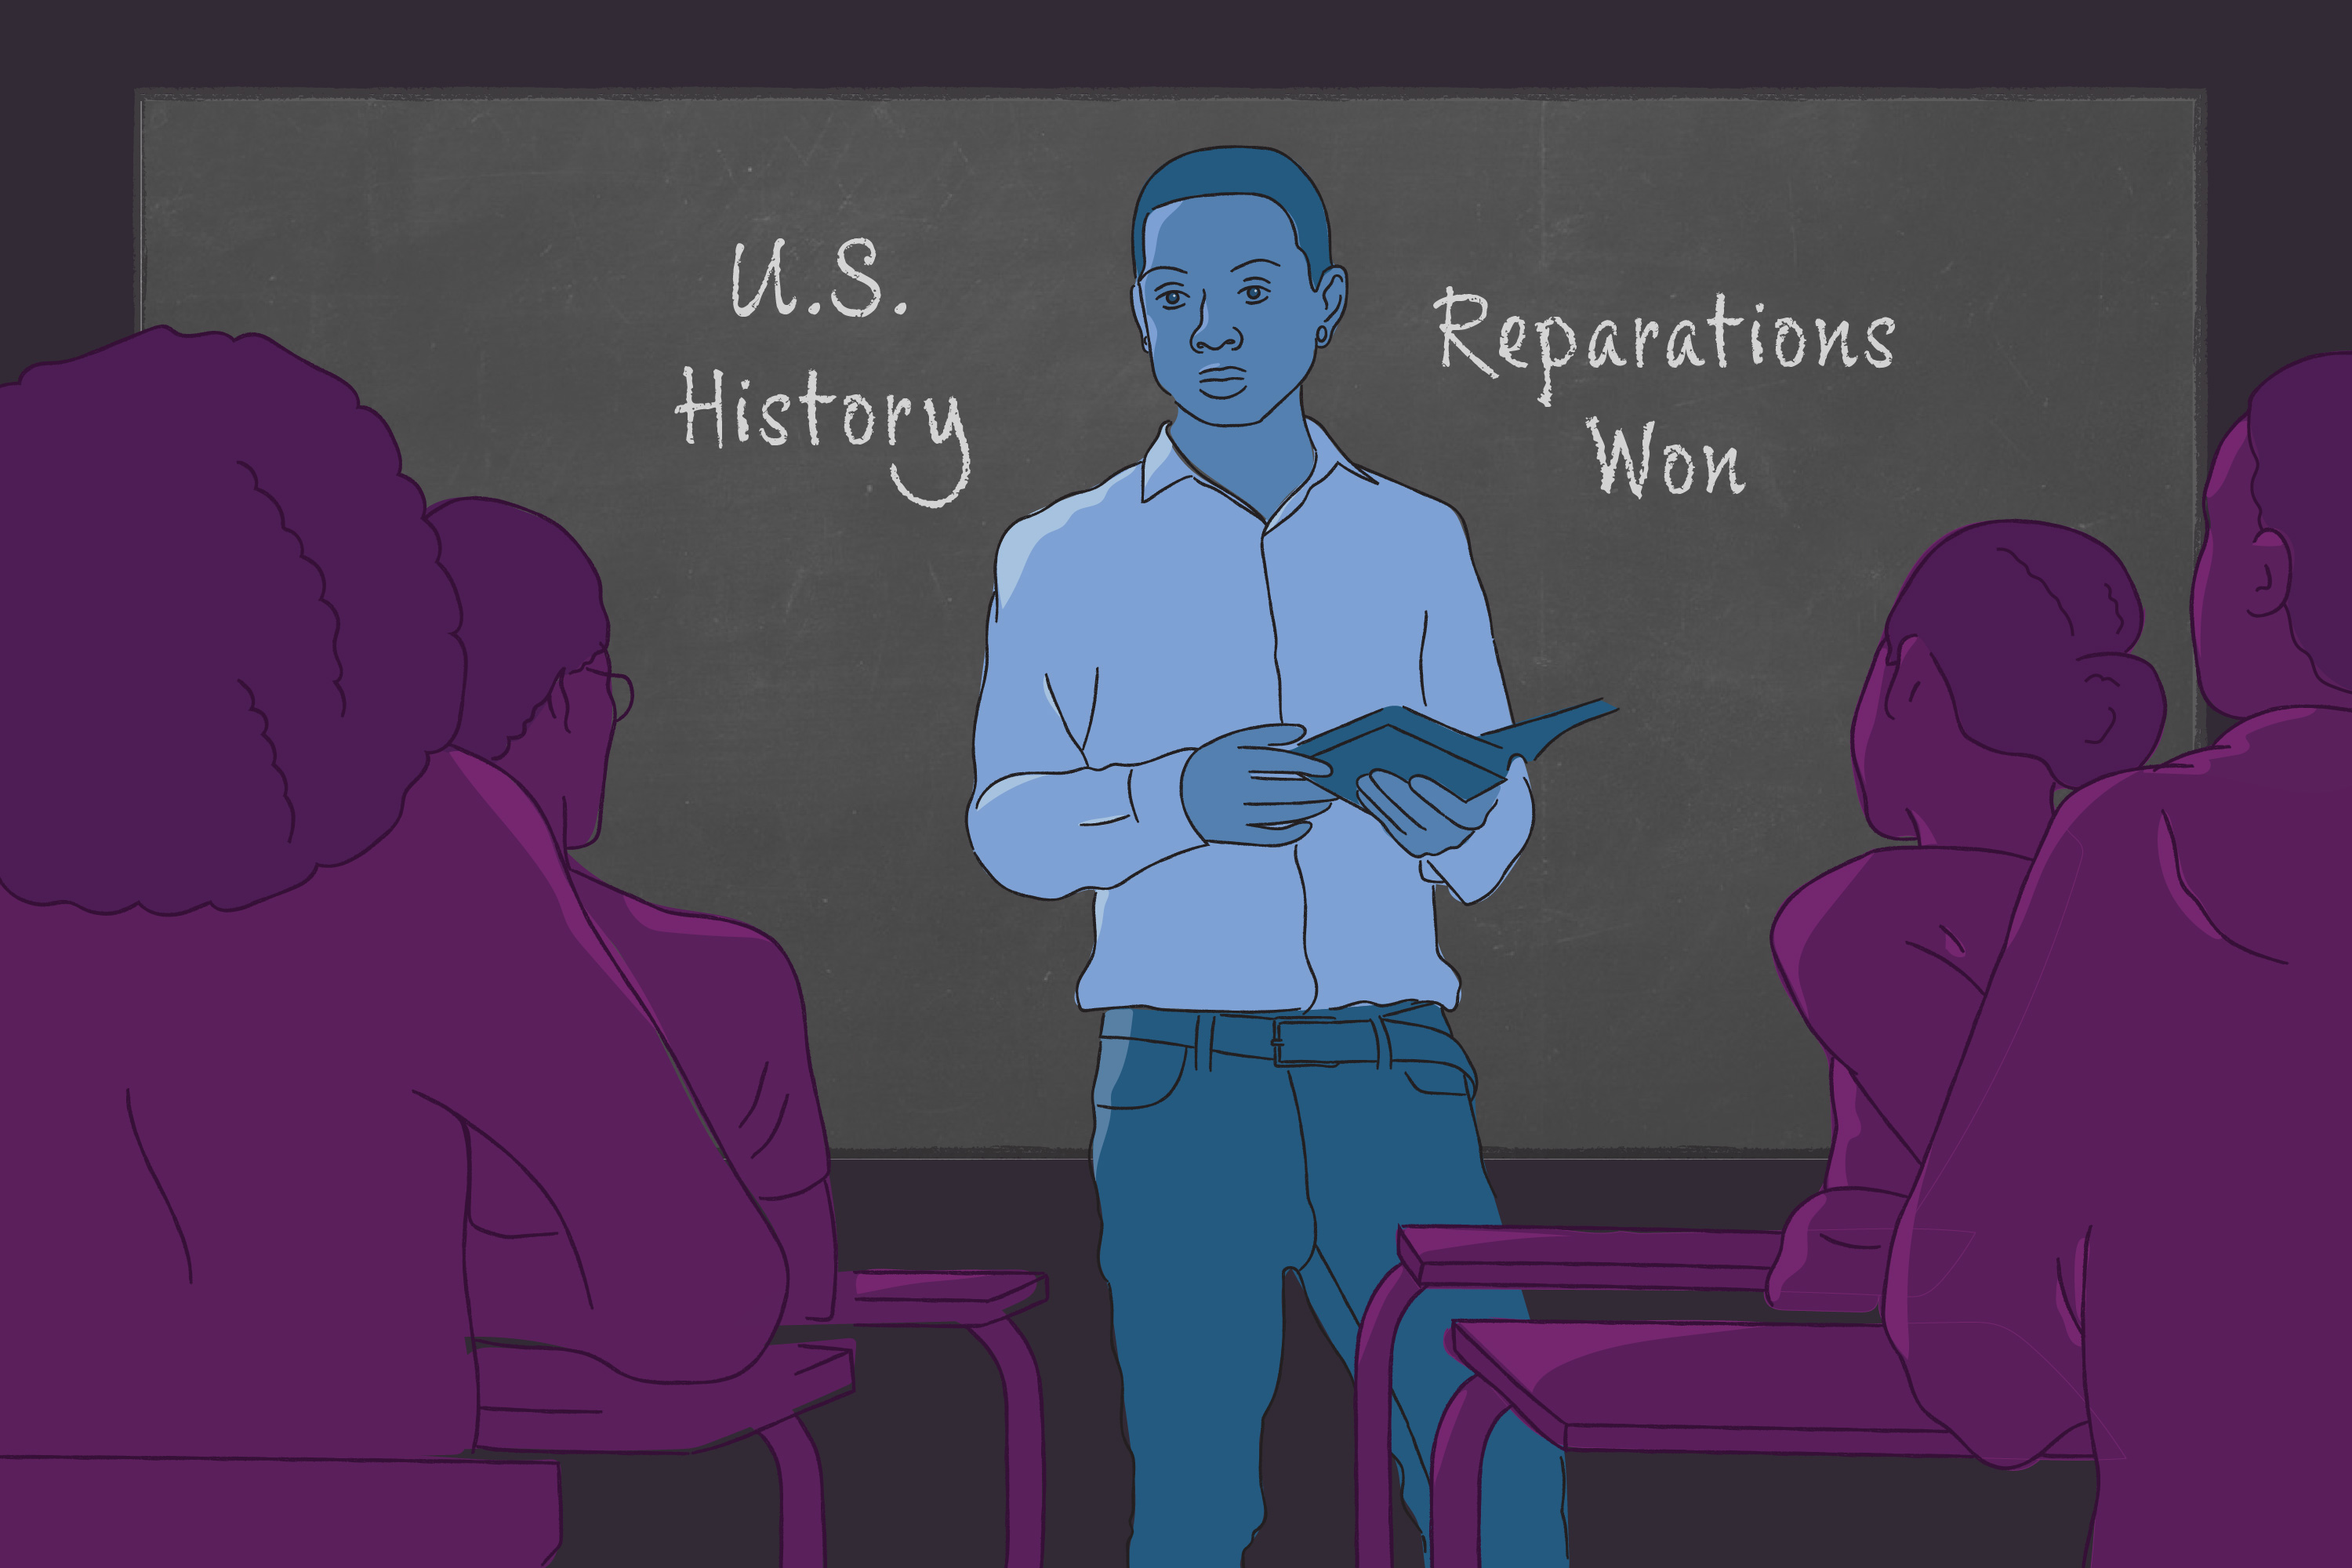 """The illustration shows a teacher standing in front of a class of high school students. The blackboard behind him reads """"U.S. History"""" and """"Reparations Won."""""""